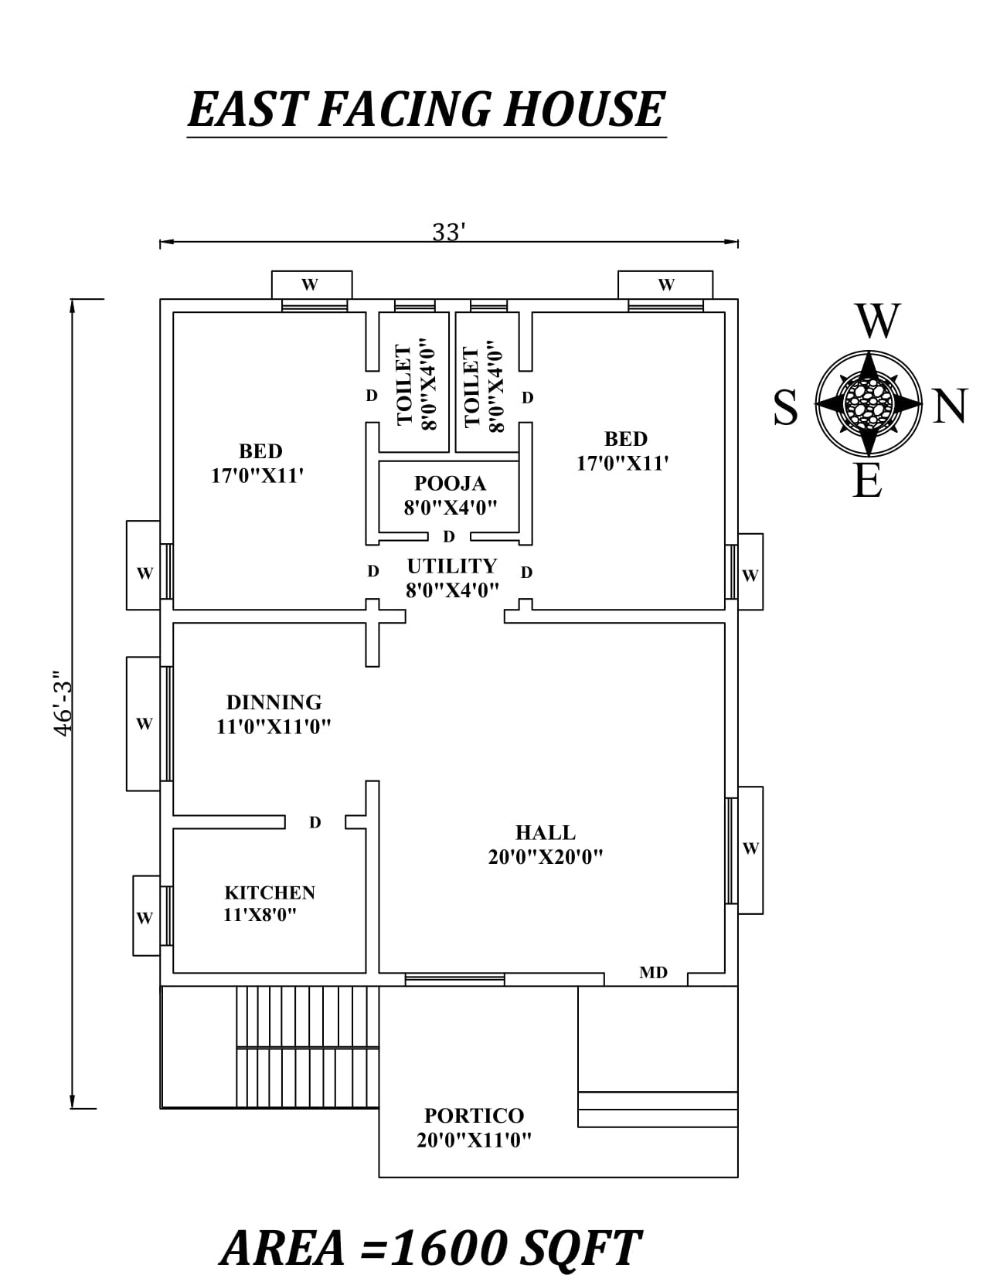 33 X46 3 Amazing 2bhk East Facing House Plan Layout As Per Vastu Shastra Budget House Plans Indian House Plans My House Plans